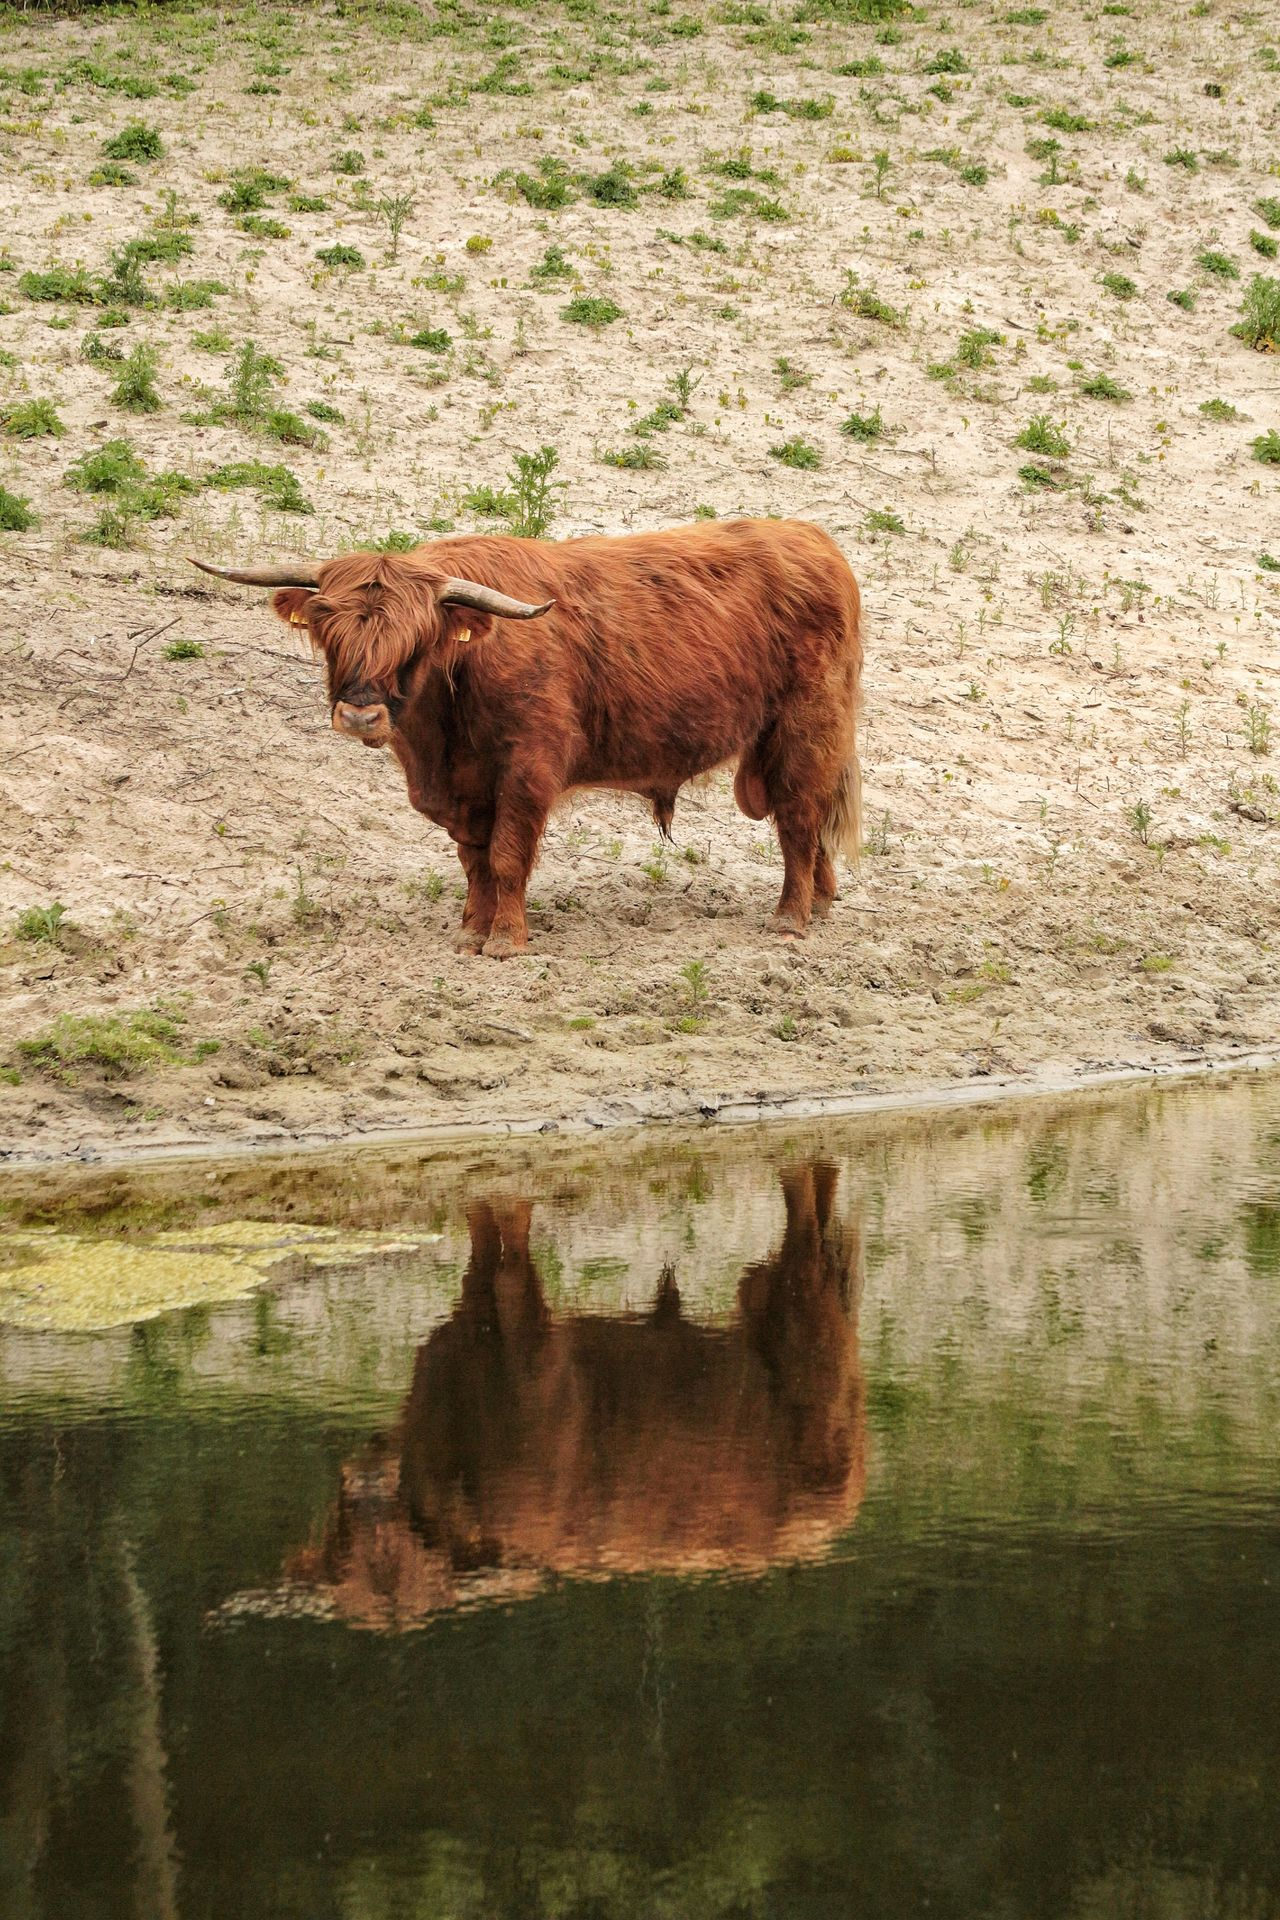 Water Mammal Domestic Animals Cow Steer Bull Farm Life Highland Cattle Animal Themes Brown One Animal Grass Livestock No People Outdoors Nature Day Stream - Flowing Water